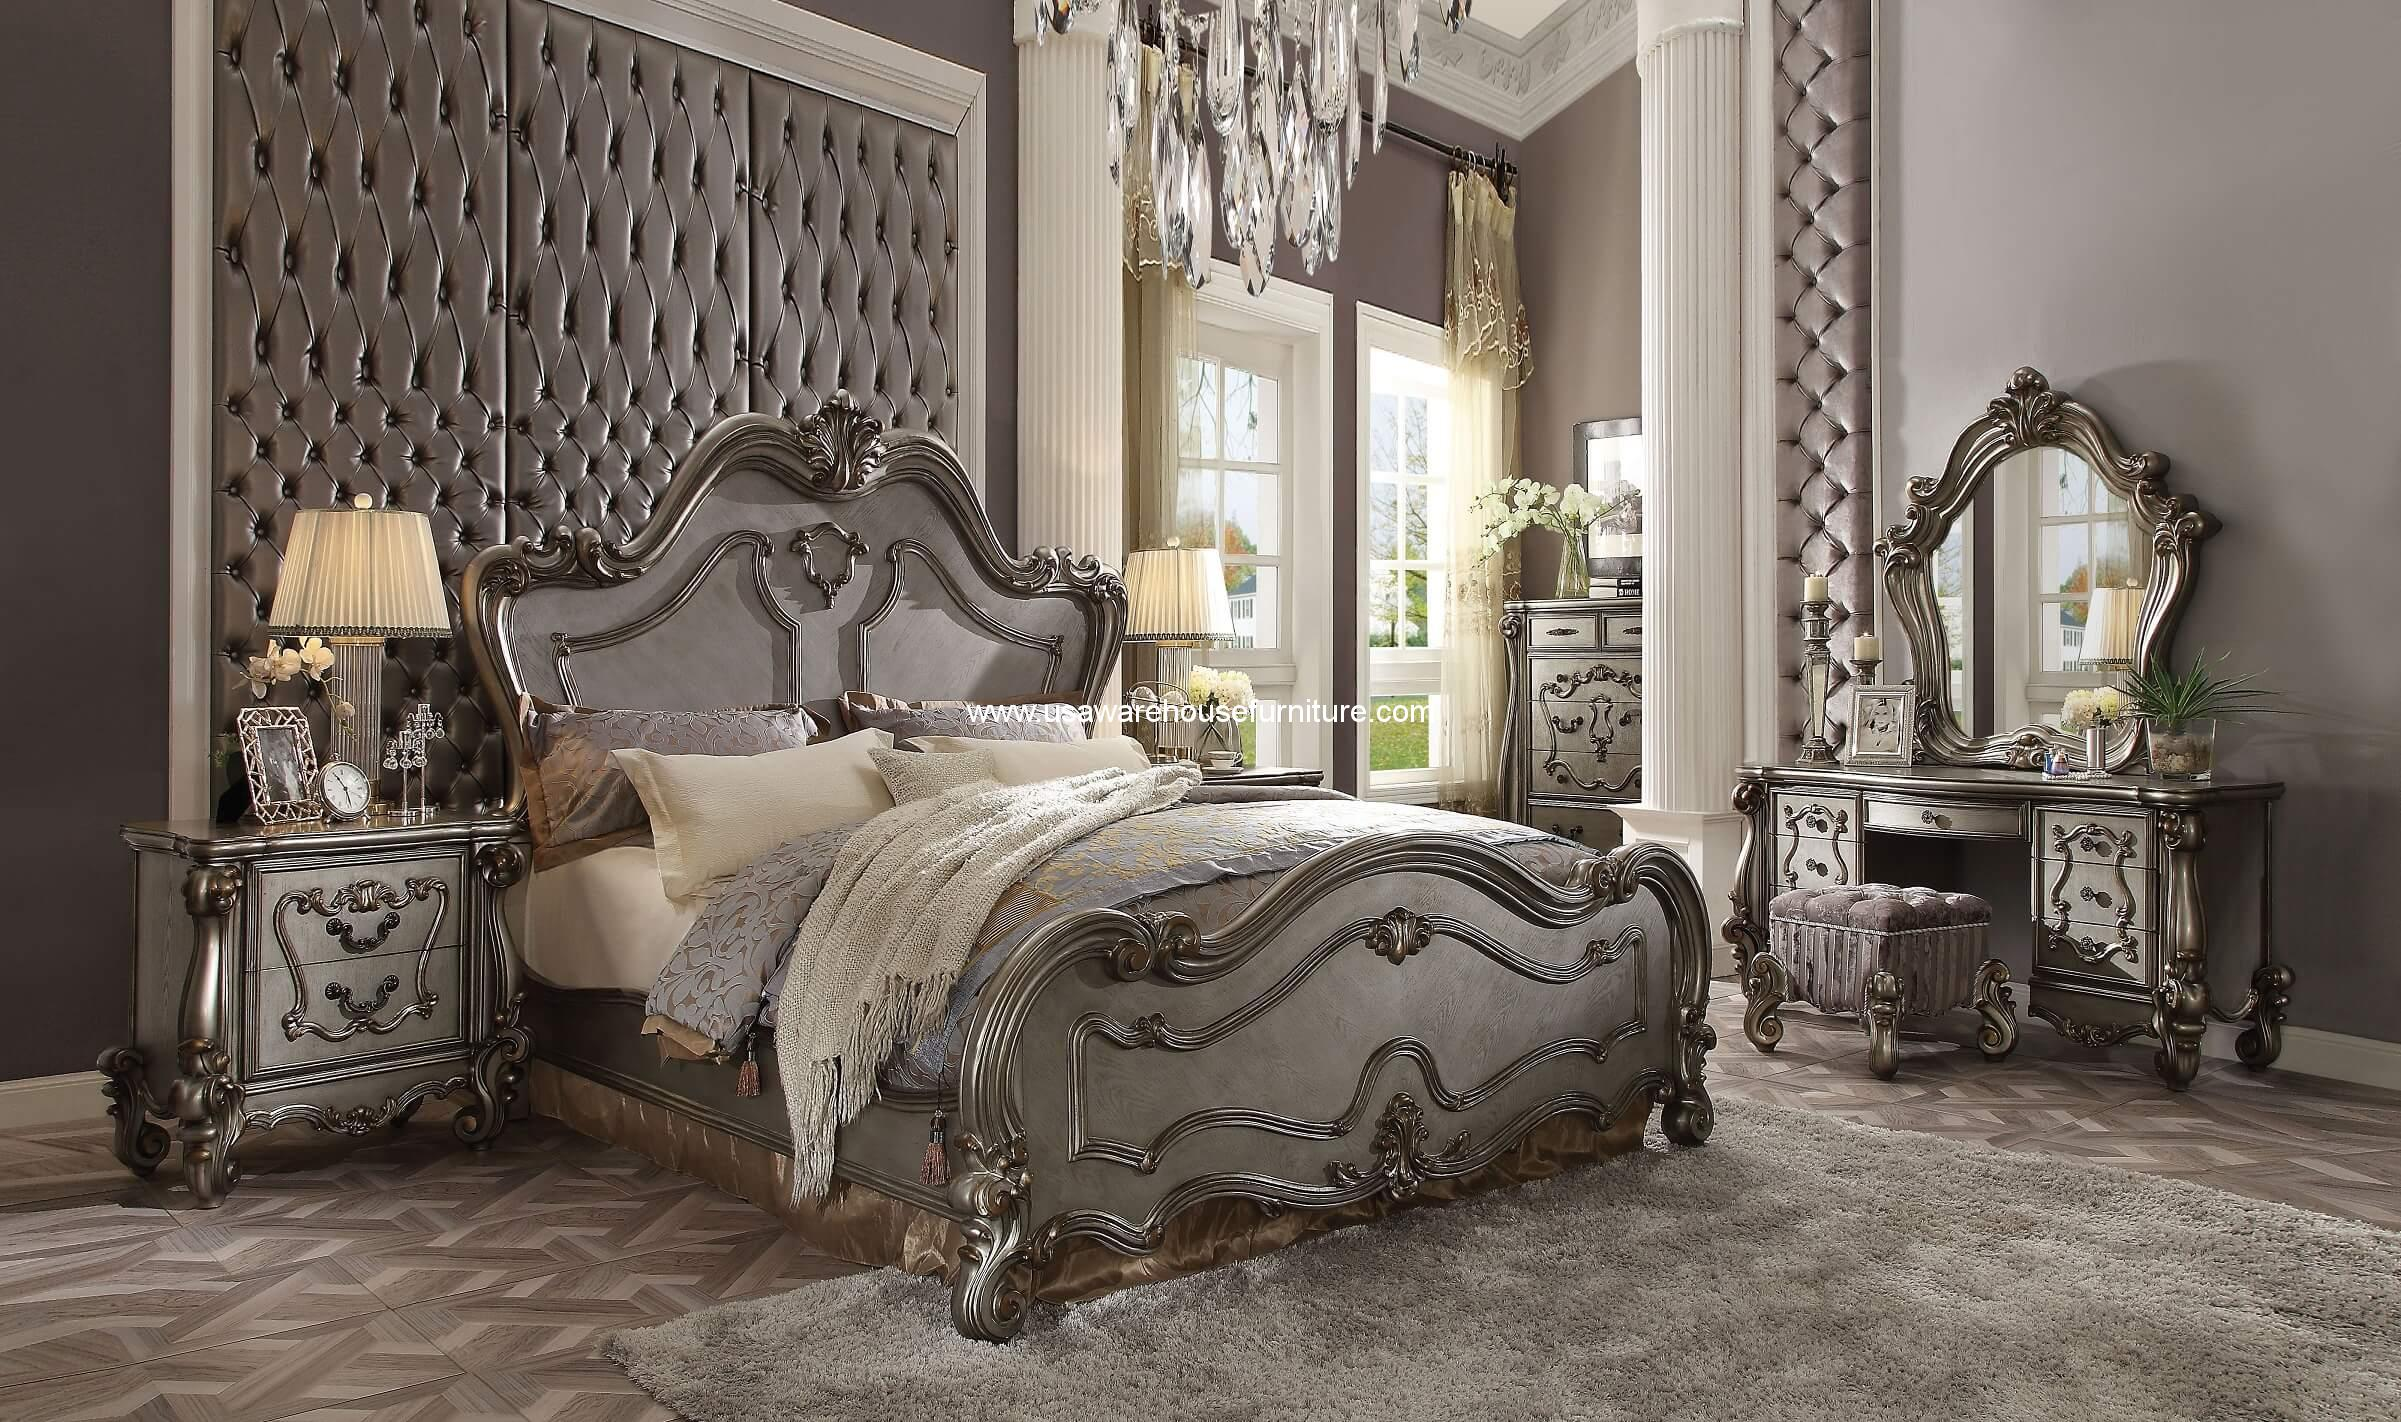 5 Piece Versailles bedroom Set Antique Platinum Finish - USA ...